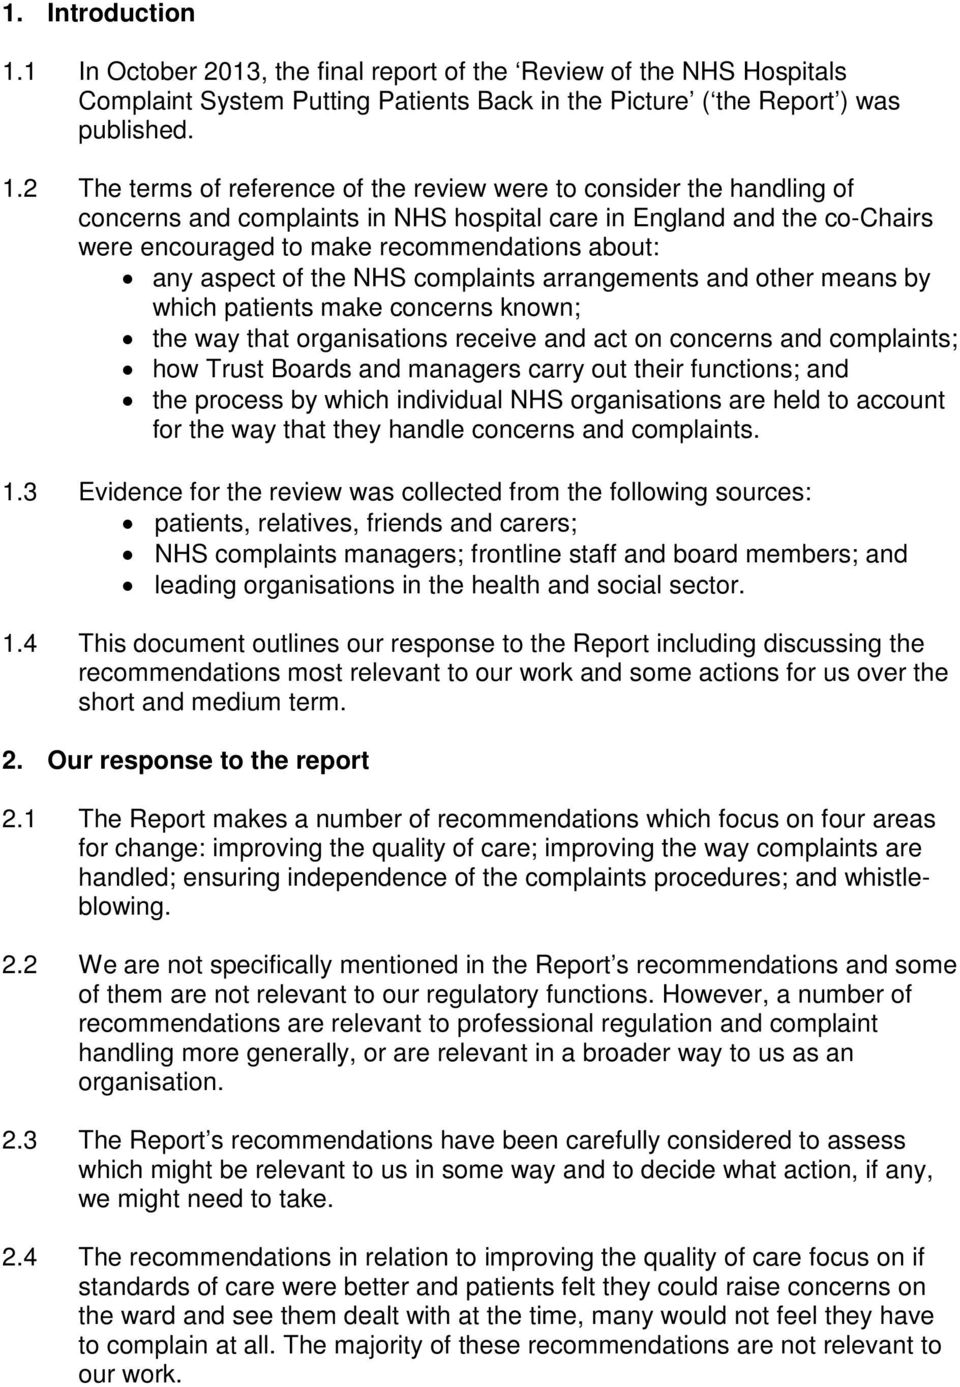 2 The terms of reference of the review were to consider the handling of concerns and complaints in NHS hospital care in England and the co-chairs were encouraged to make recommendations about: any